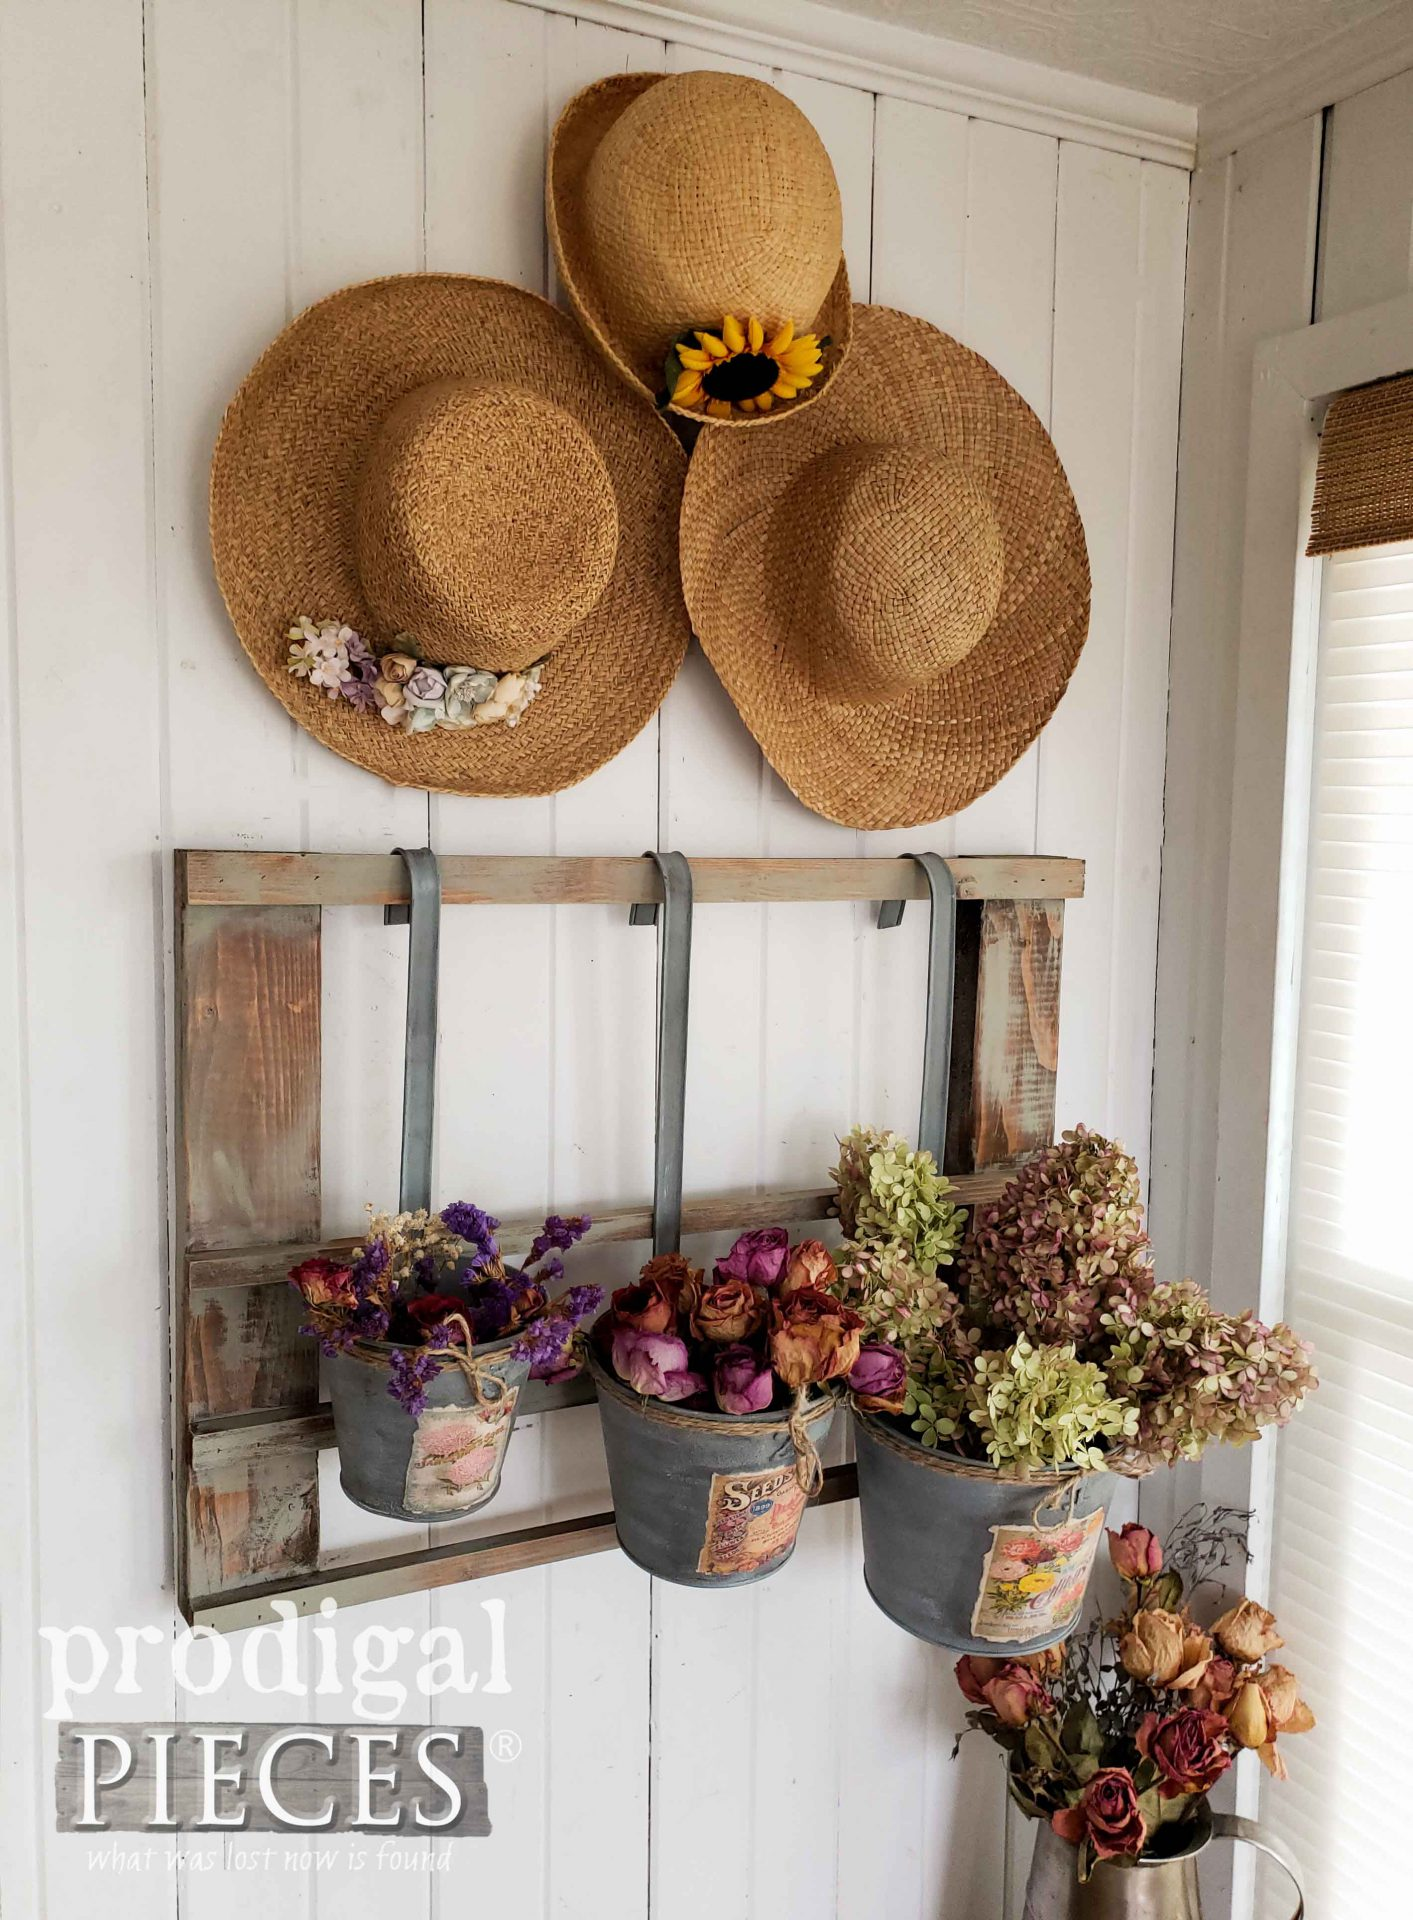 Simple Farmhouse Decor by Larissa of Prodigal Pieces | prodigalpieces.com #prodigalpieces #farmhouse #diy #home #homedecor